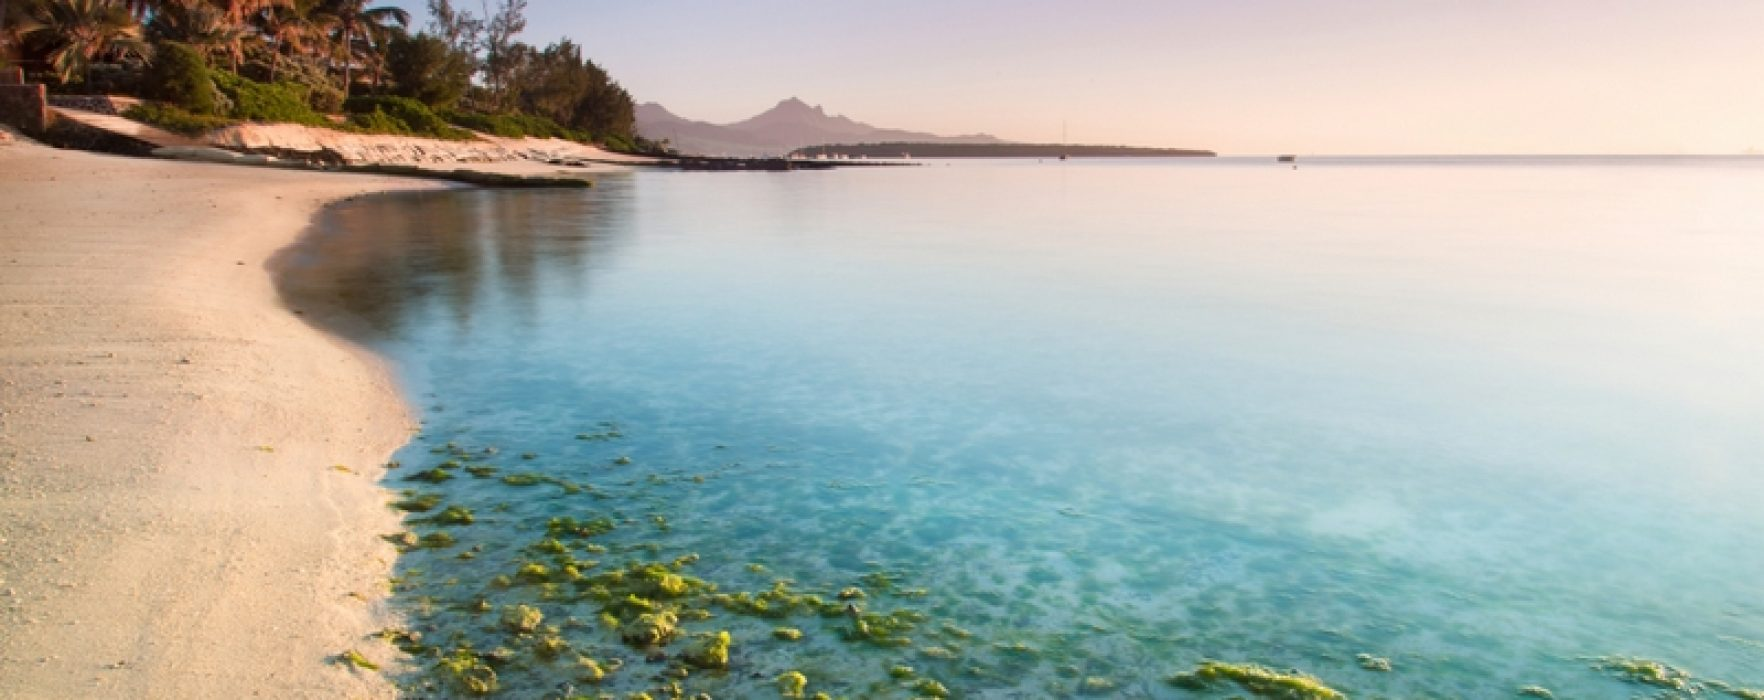 The best way to experience Mauritius without the millionaire price tag